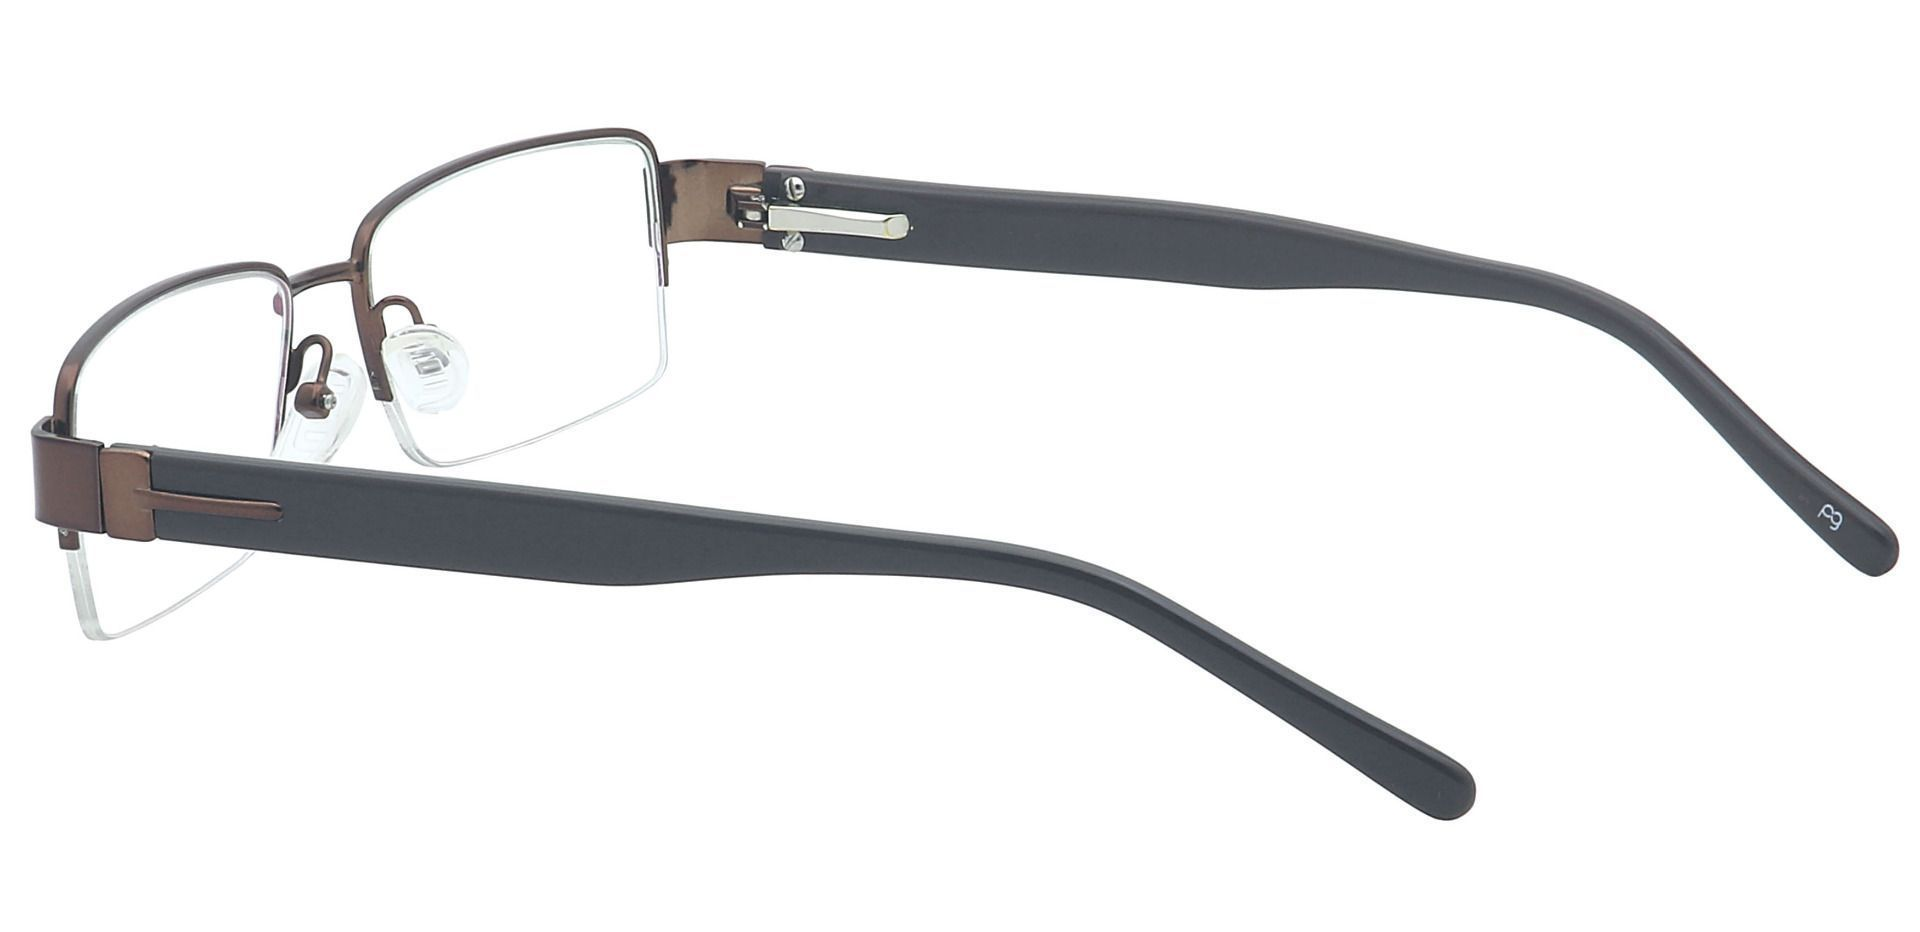 Roger Rectangle Lined Bifocal Glasses - Brown